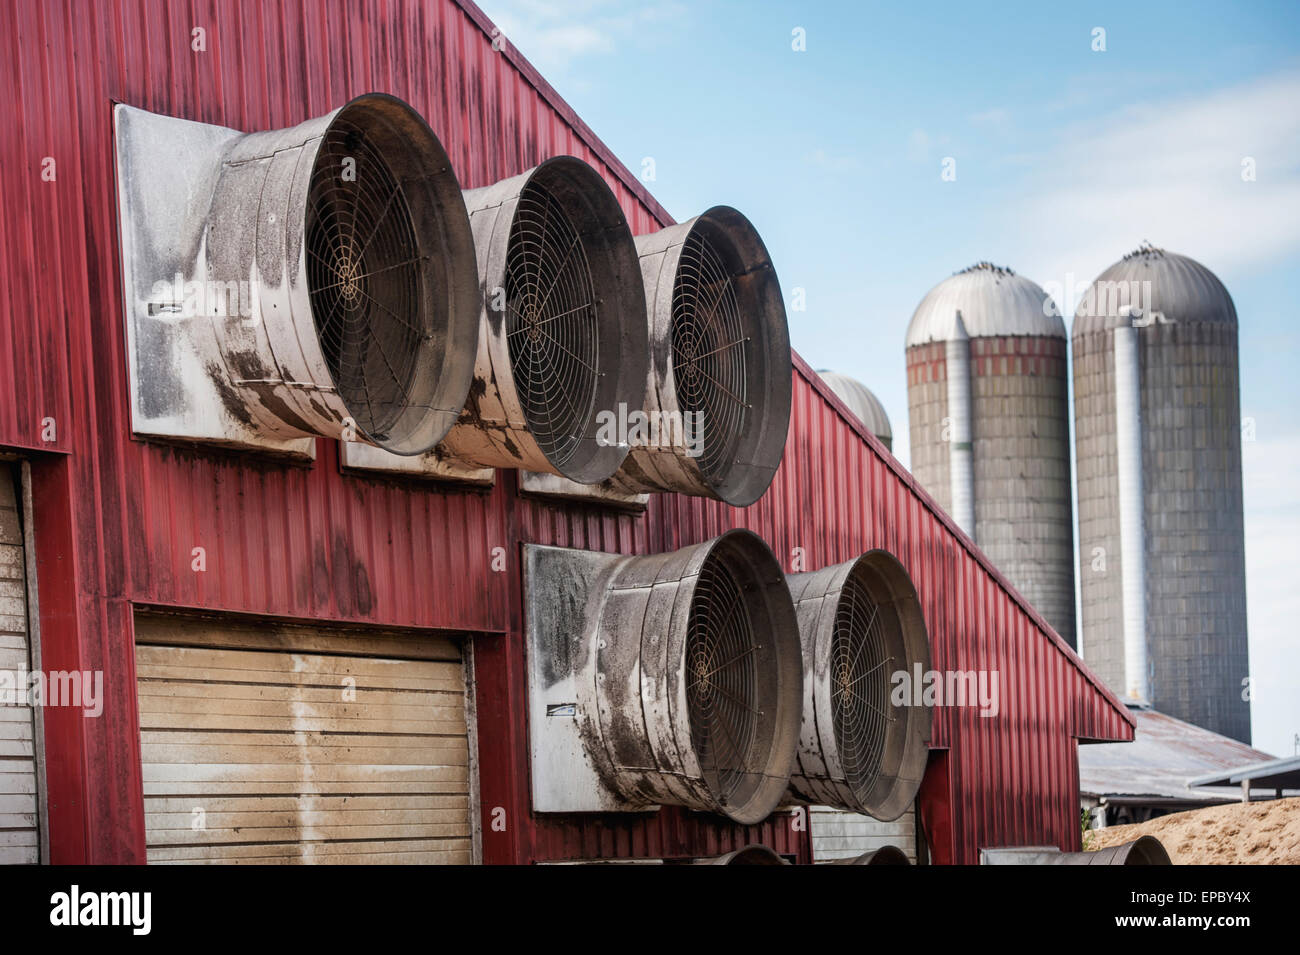 Ventilation fans on a farm building; Ridgley, Maryland, United States of America - Stock Image